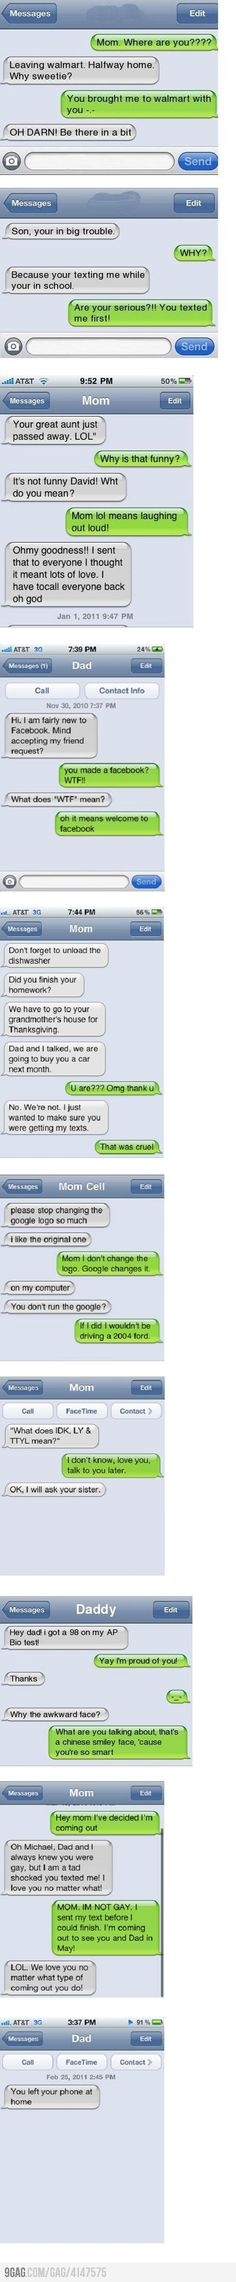 haha...mom & dad texting--I posted this before but it still makes me laugh. Silly parents.